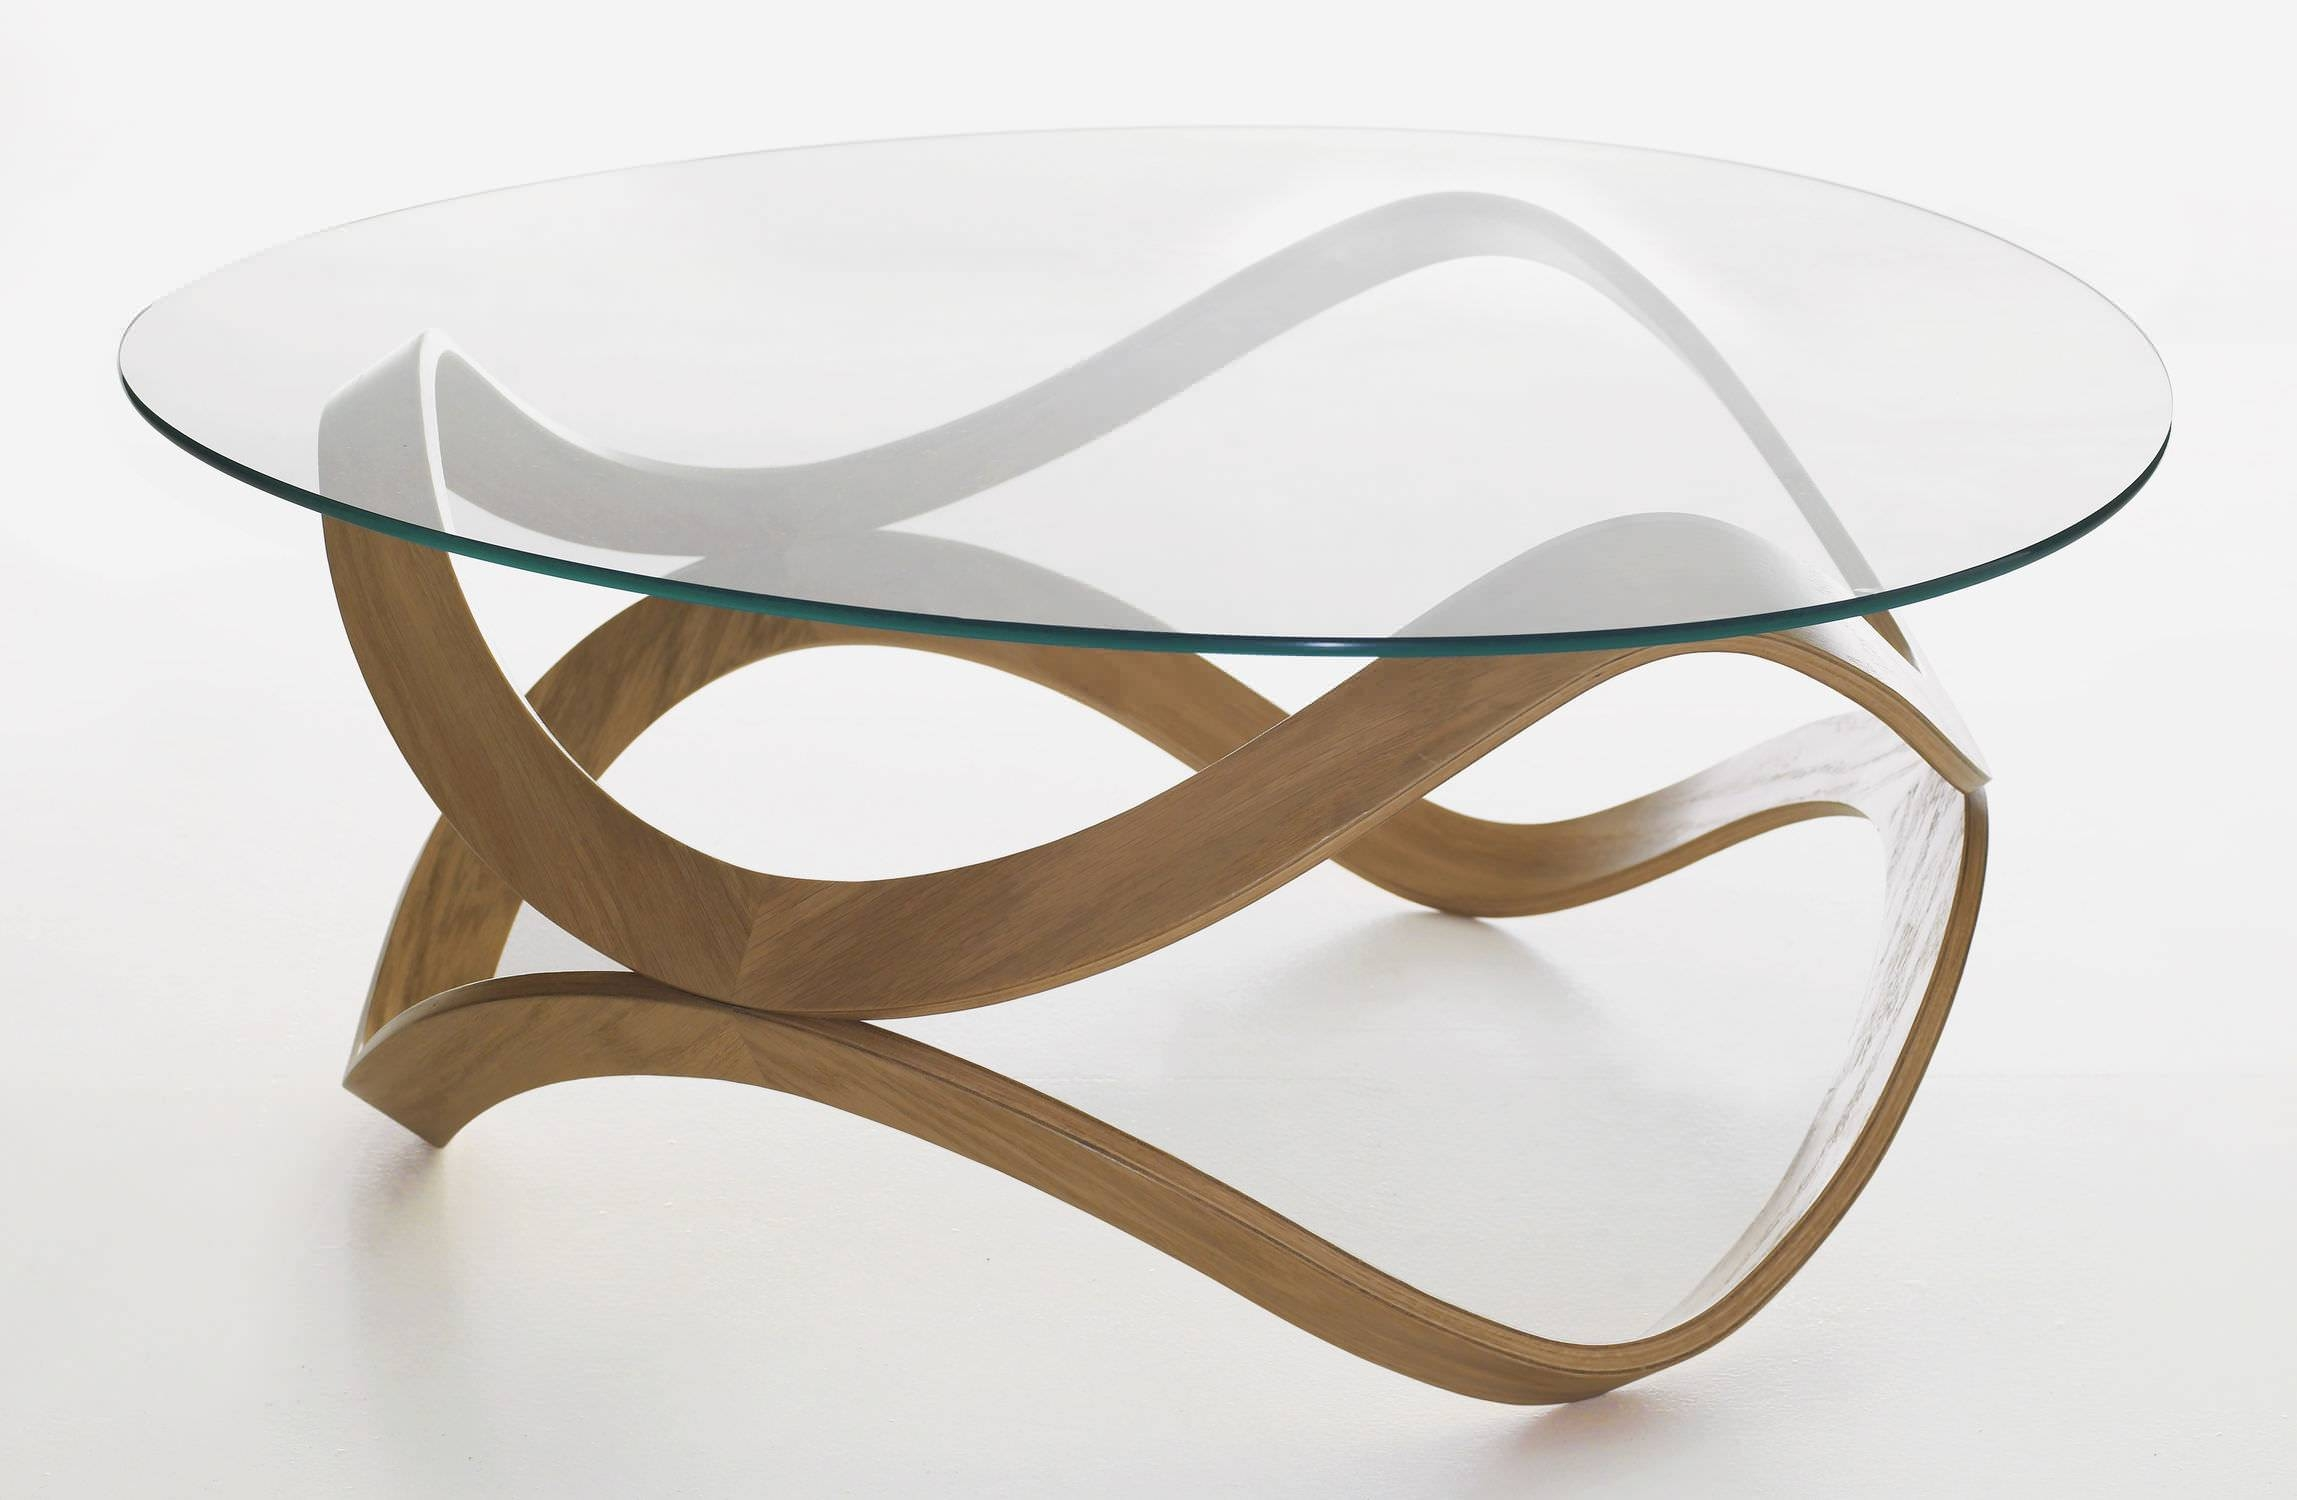 Contemporary Coffee Table / Glass / Oak / Ash - Newtond.sunaga intended for Oak and Glass Coffee Tables (Image 6 of 30)